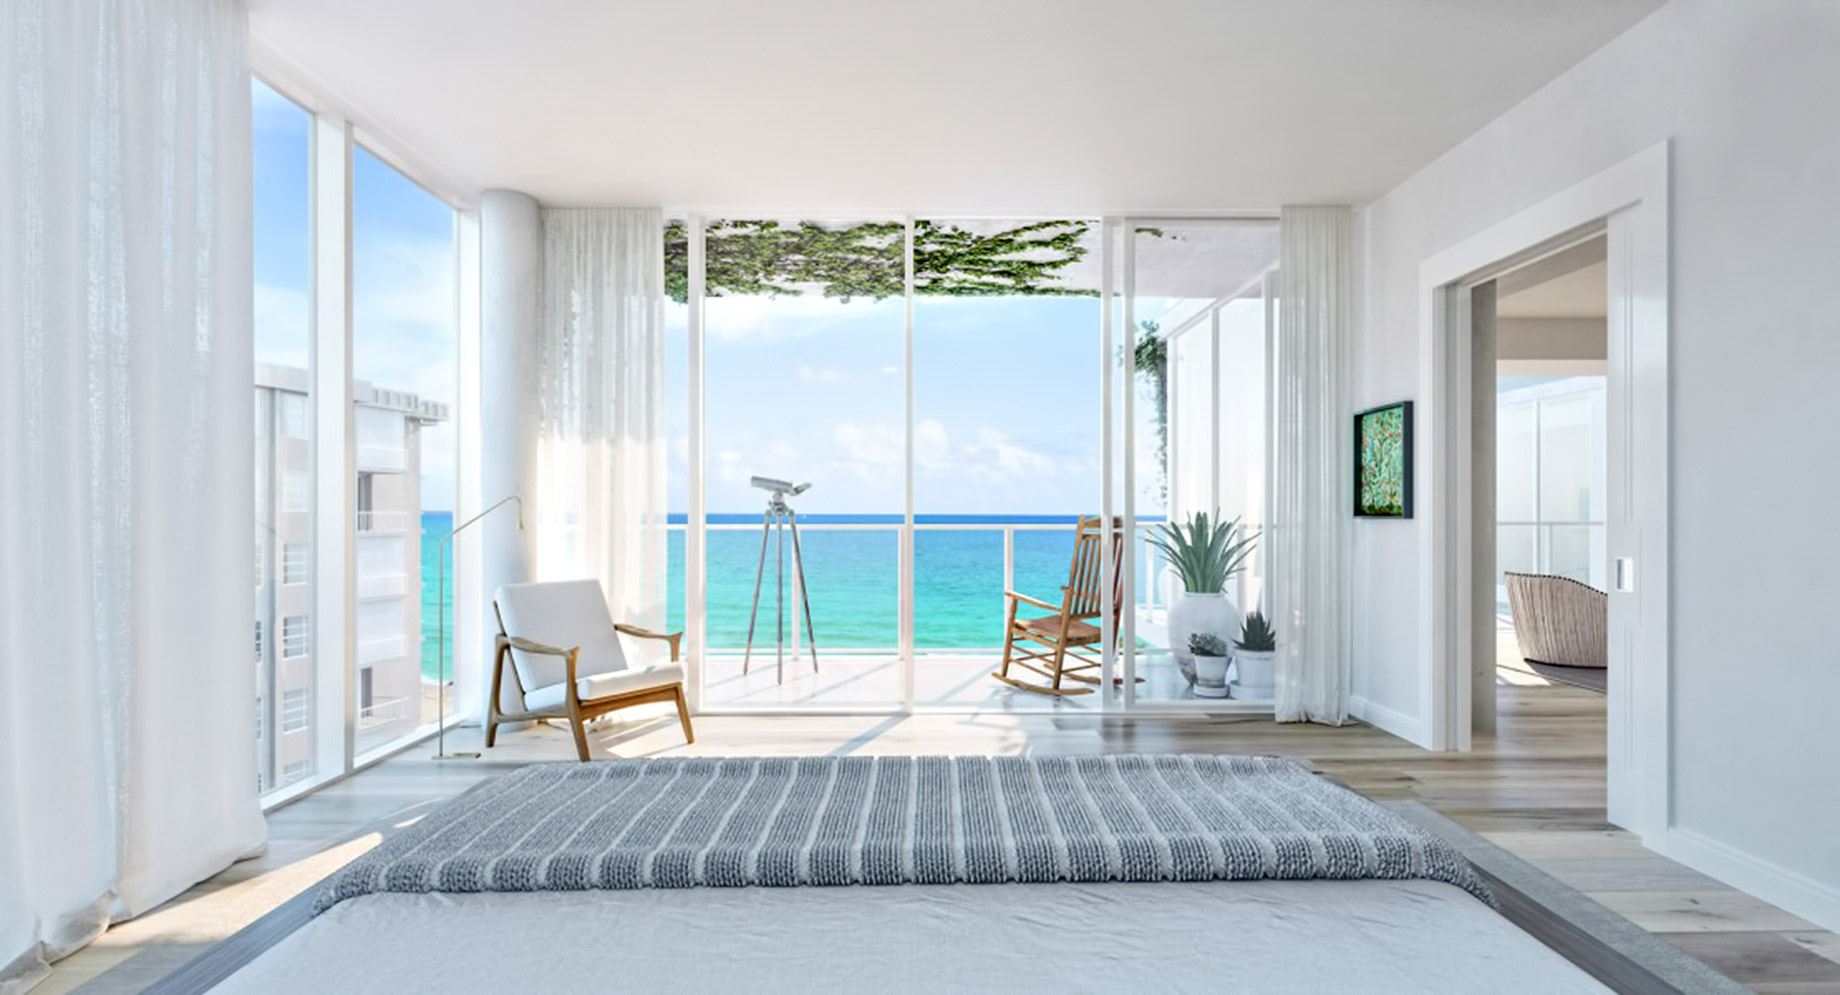 Stunning Views - Florida Luxury Real Estate - The Appeal of a Second Home in Palm Beach